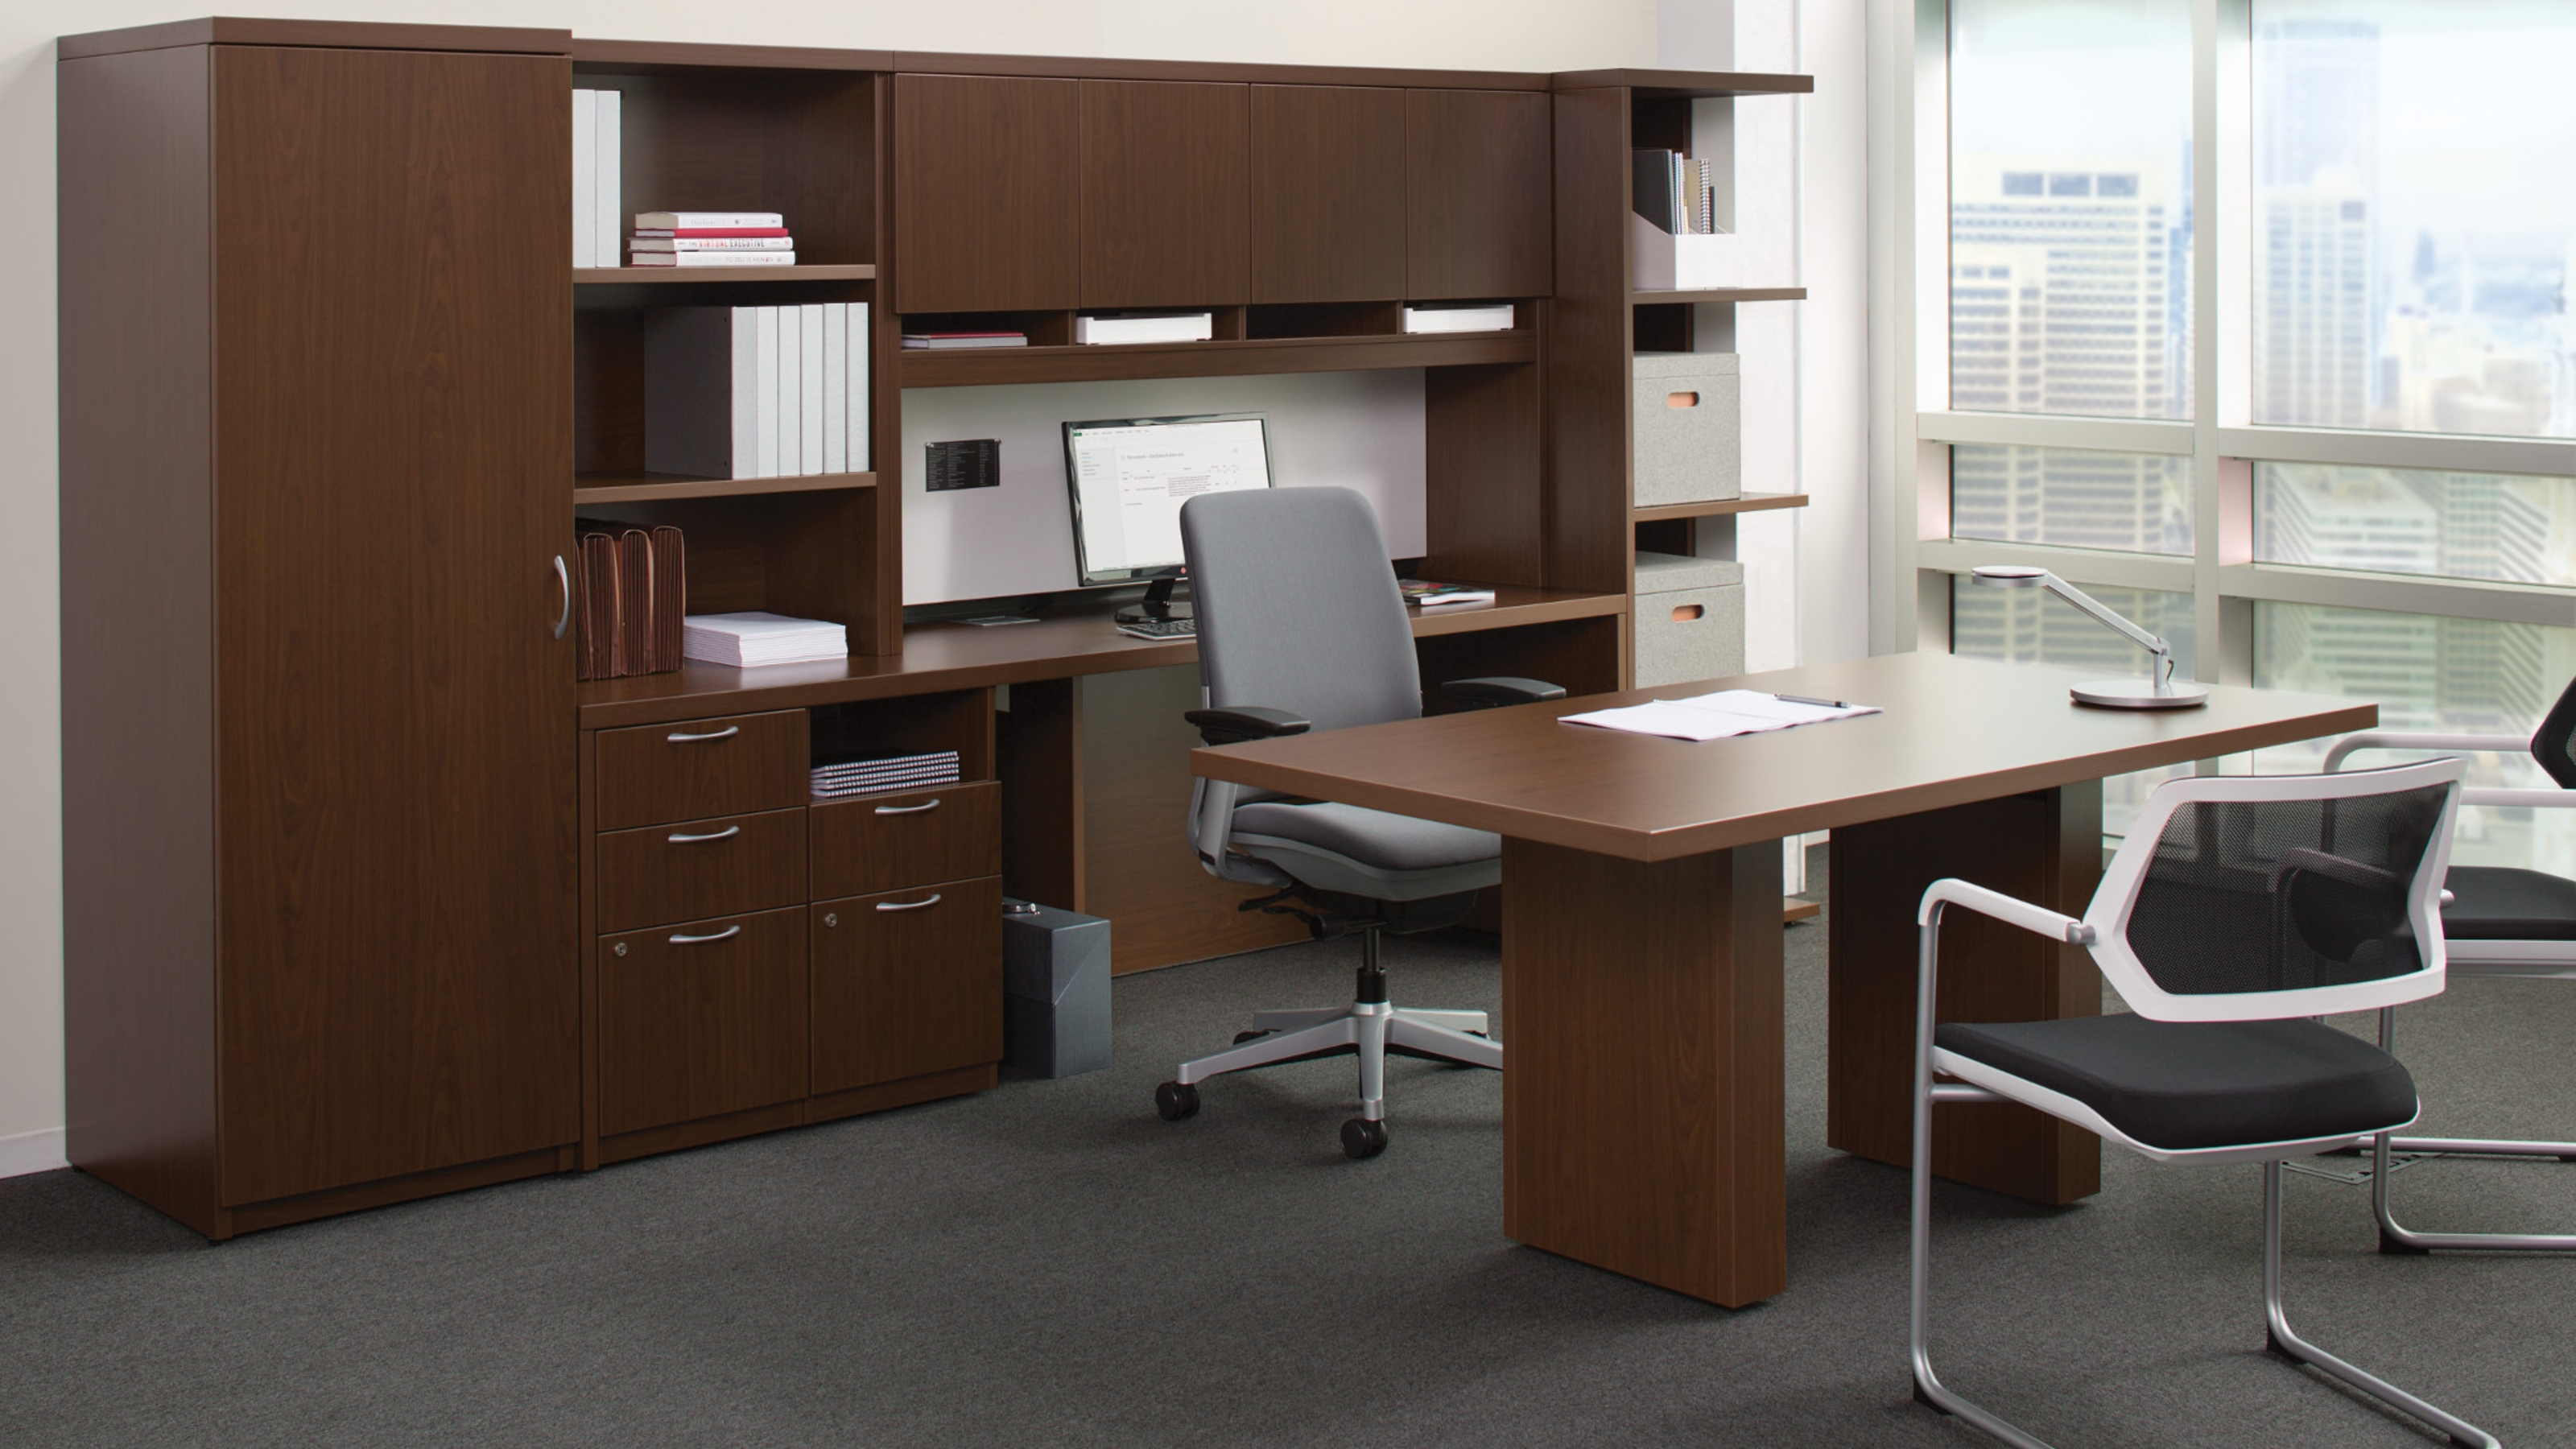 panel solutions system ofgo canada desks office eagle services interior design